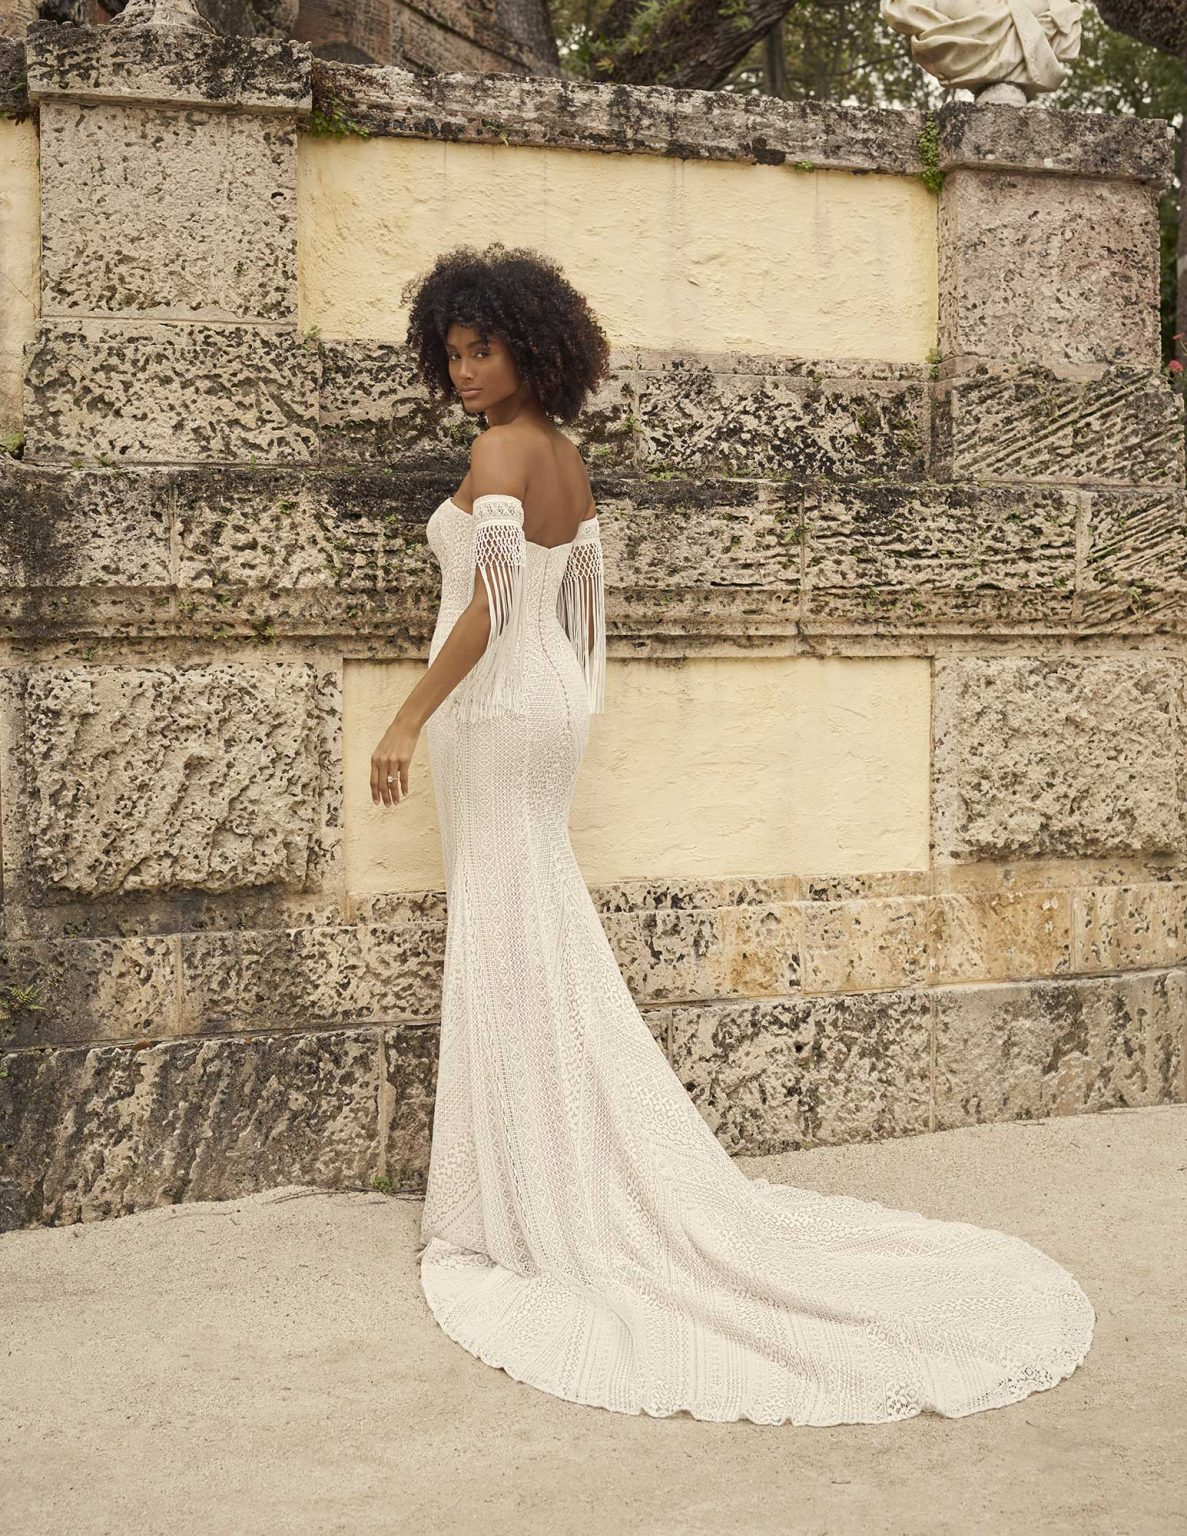 High---Maggie-Sottero-Dover-21MC762A01-Alt6-BLS-uncropped